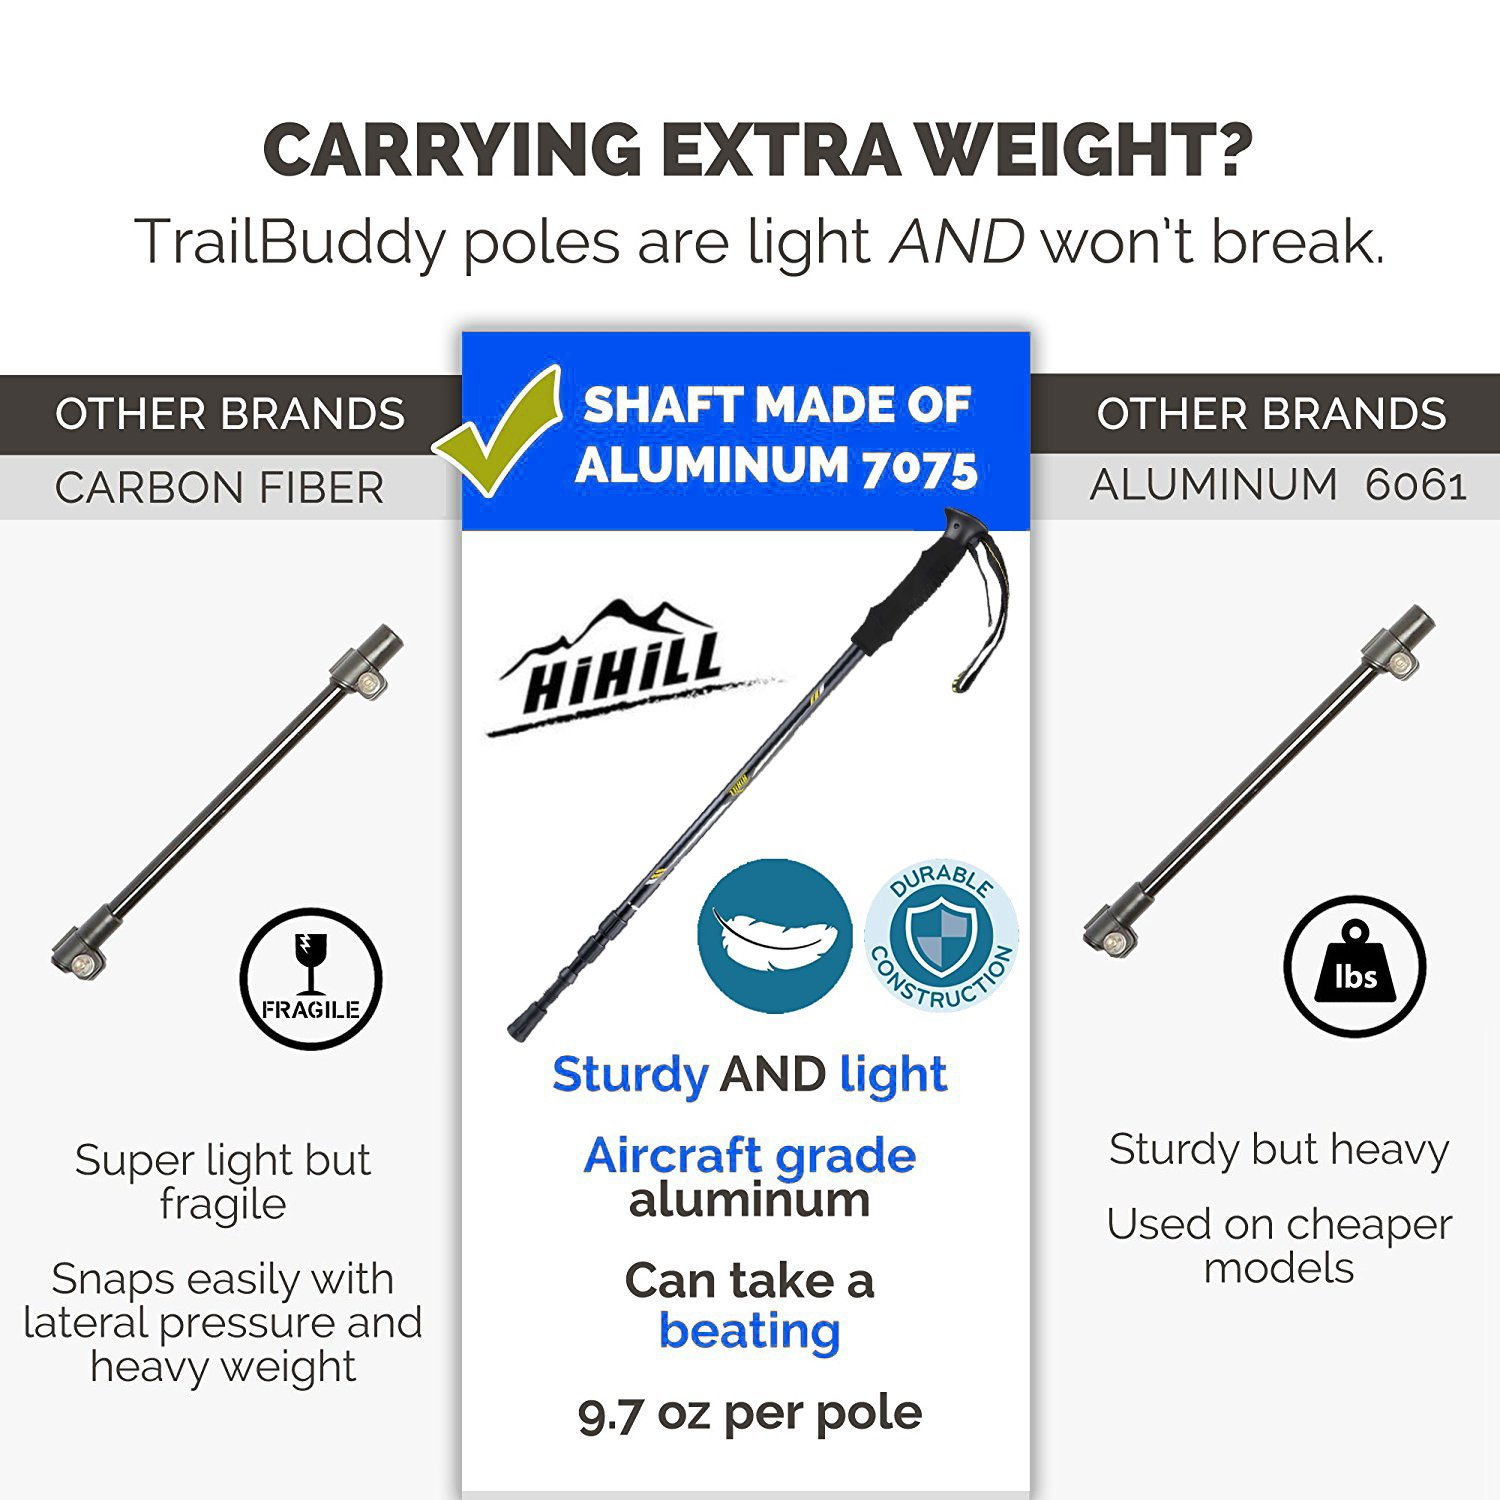 Trekking Poles - Walking Sticks with Foam Grip, Strong 7075 Aluminum Alloy, Adjustable Antishock for Hiking, Walking, Traveling, Backpacking, etc (TP-D1)